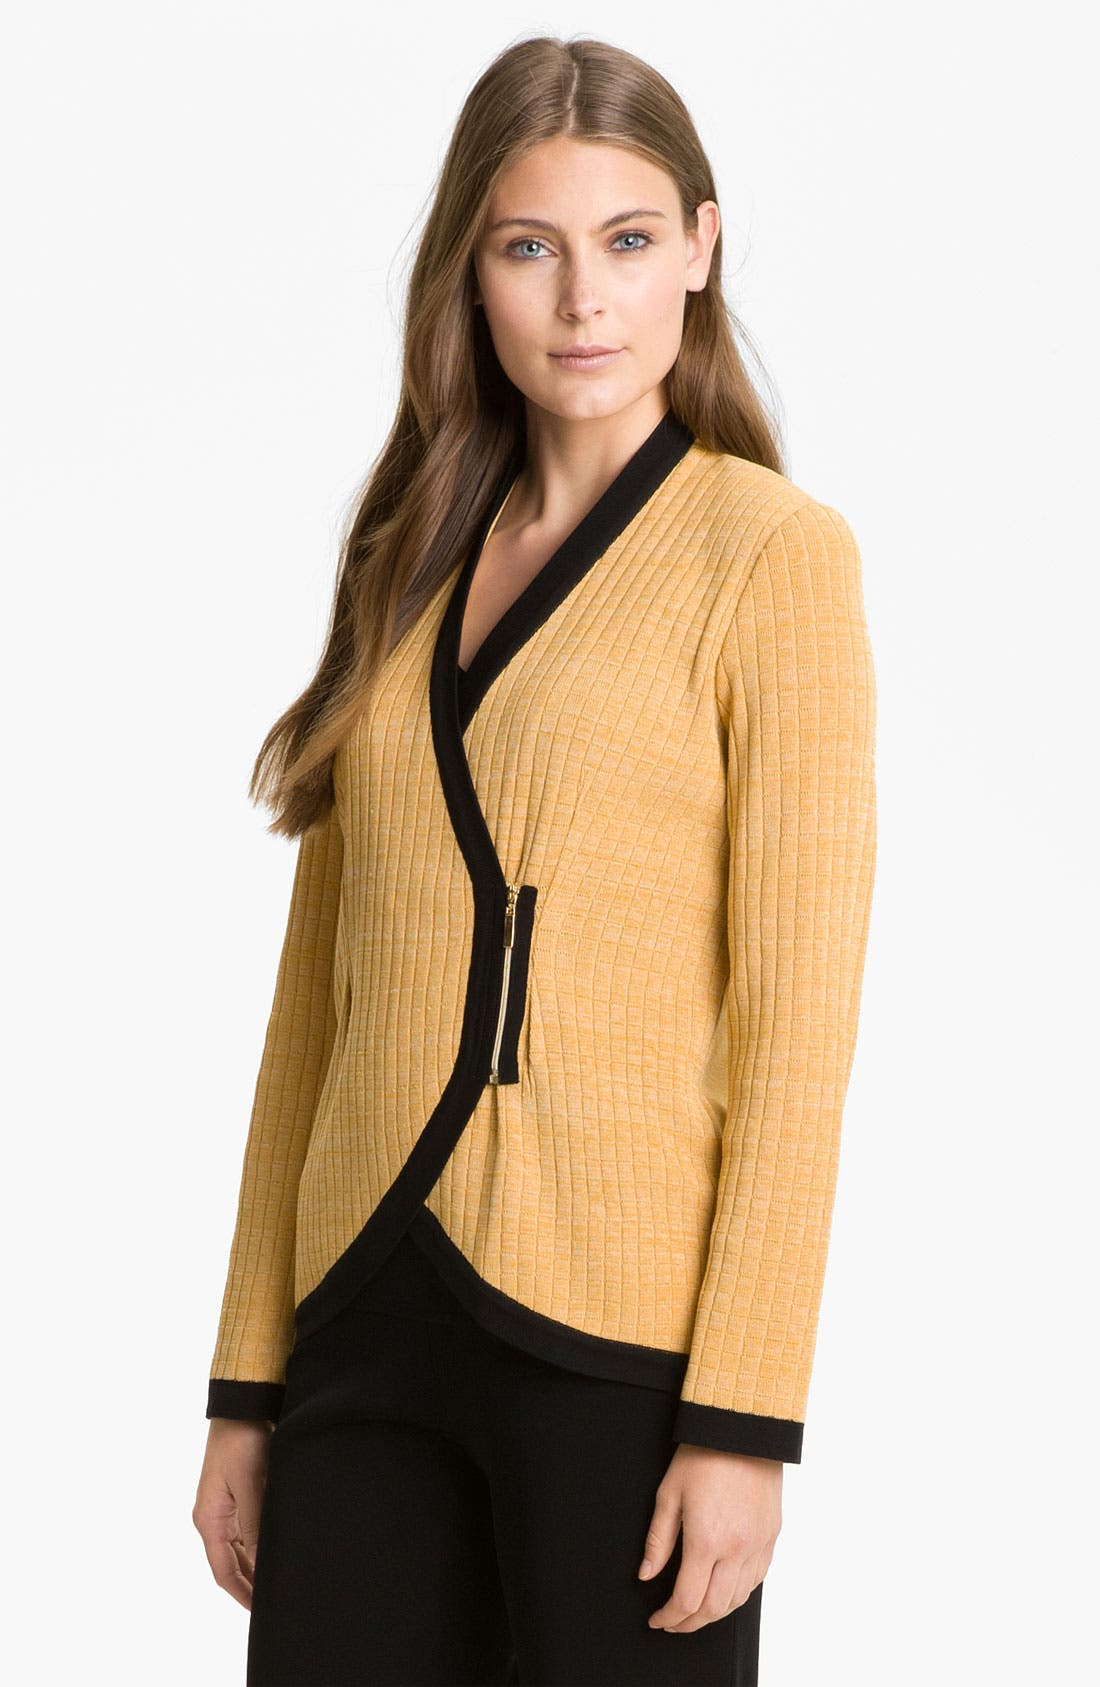 Alternate Image 1 Selected - Exclusively Misook Asymmetrical Zip Sweater Jacket